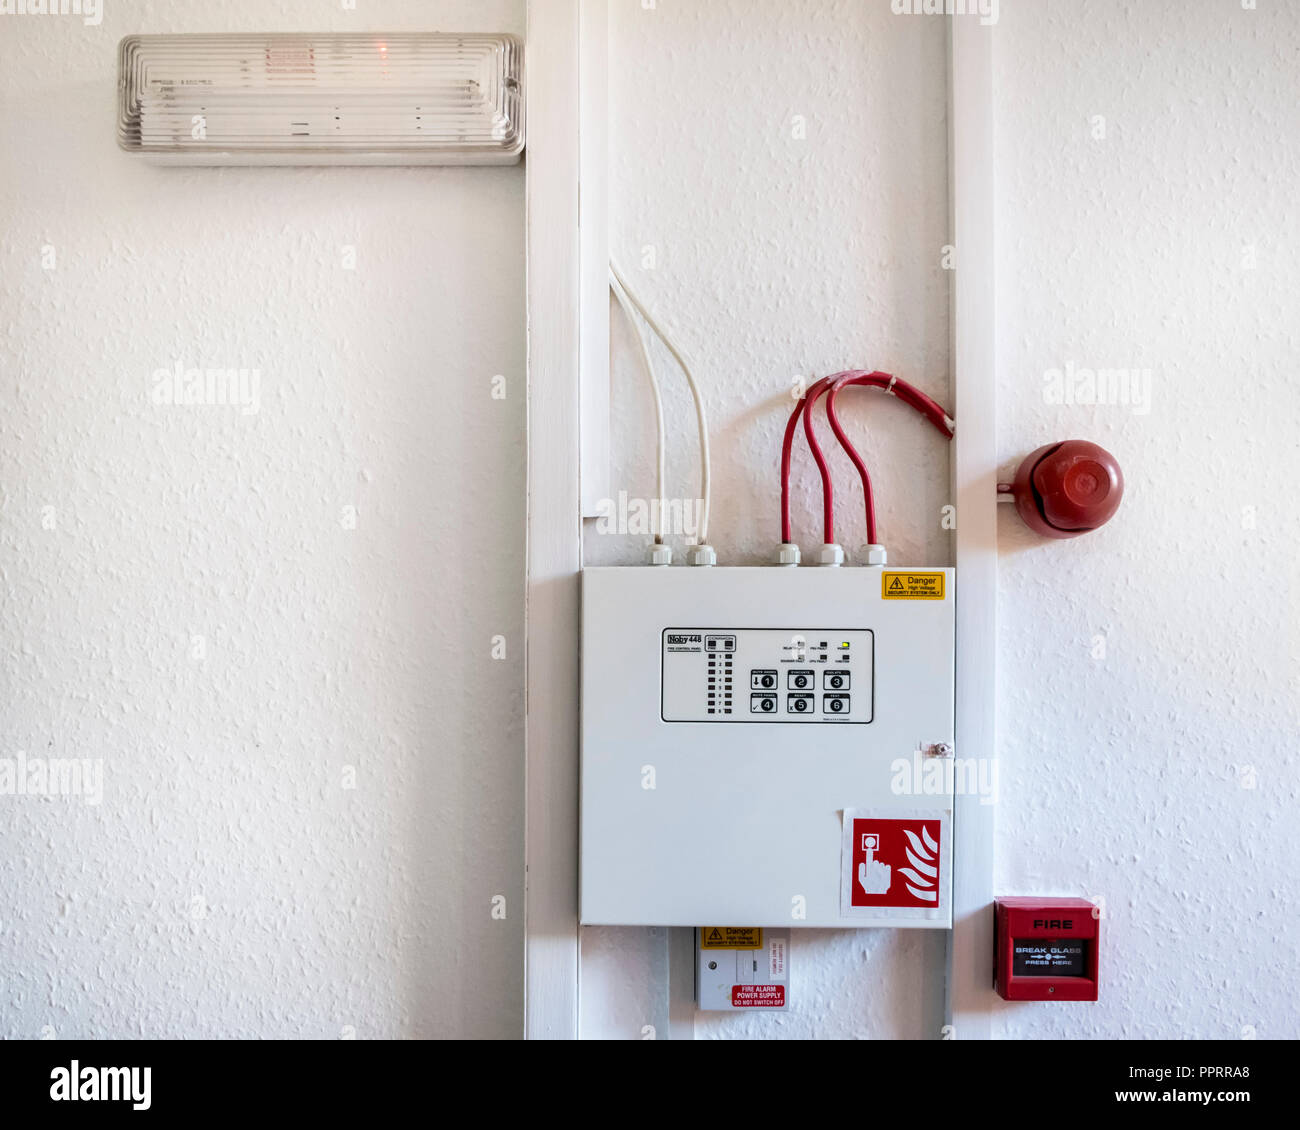 Fire alarm system with fire bell and safety light with a Noby 448 fire control panel - Stock Image